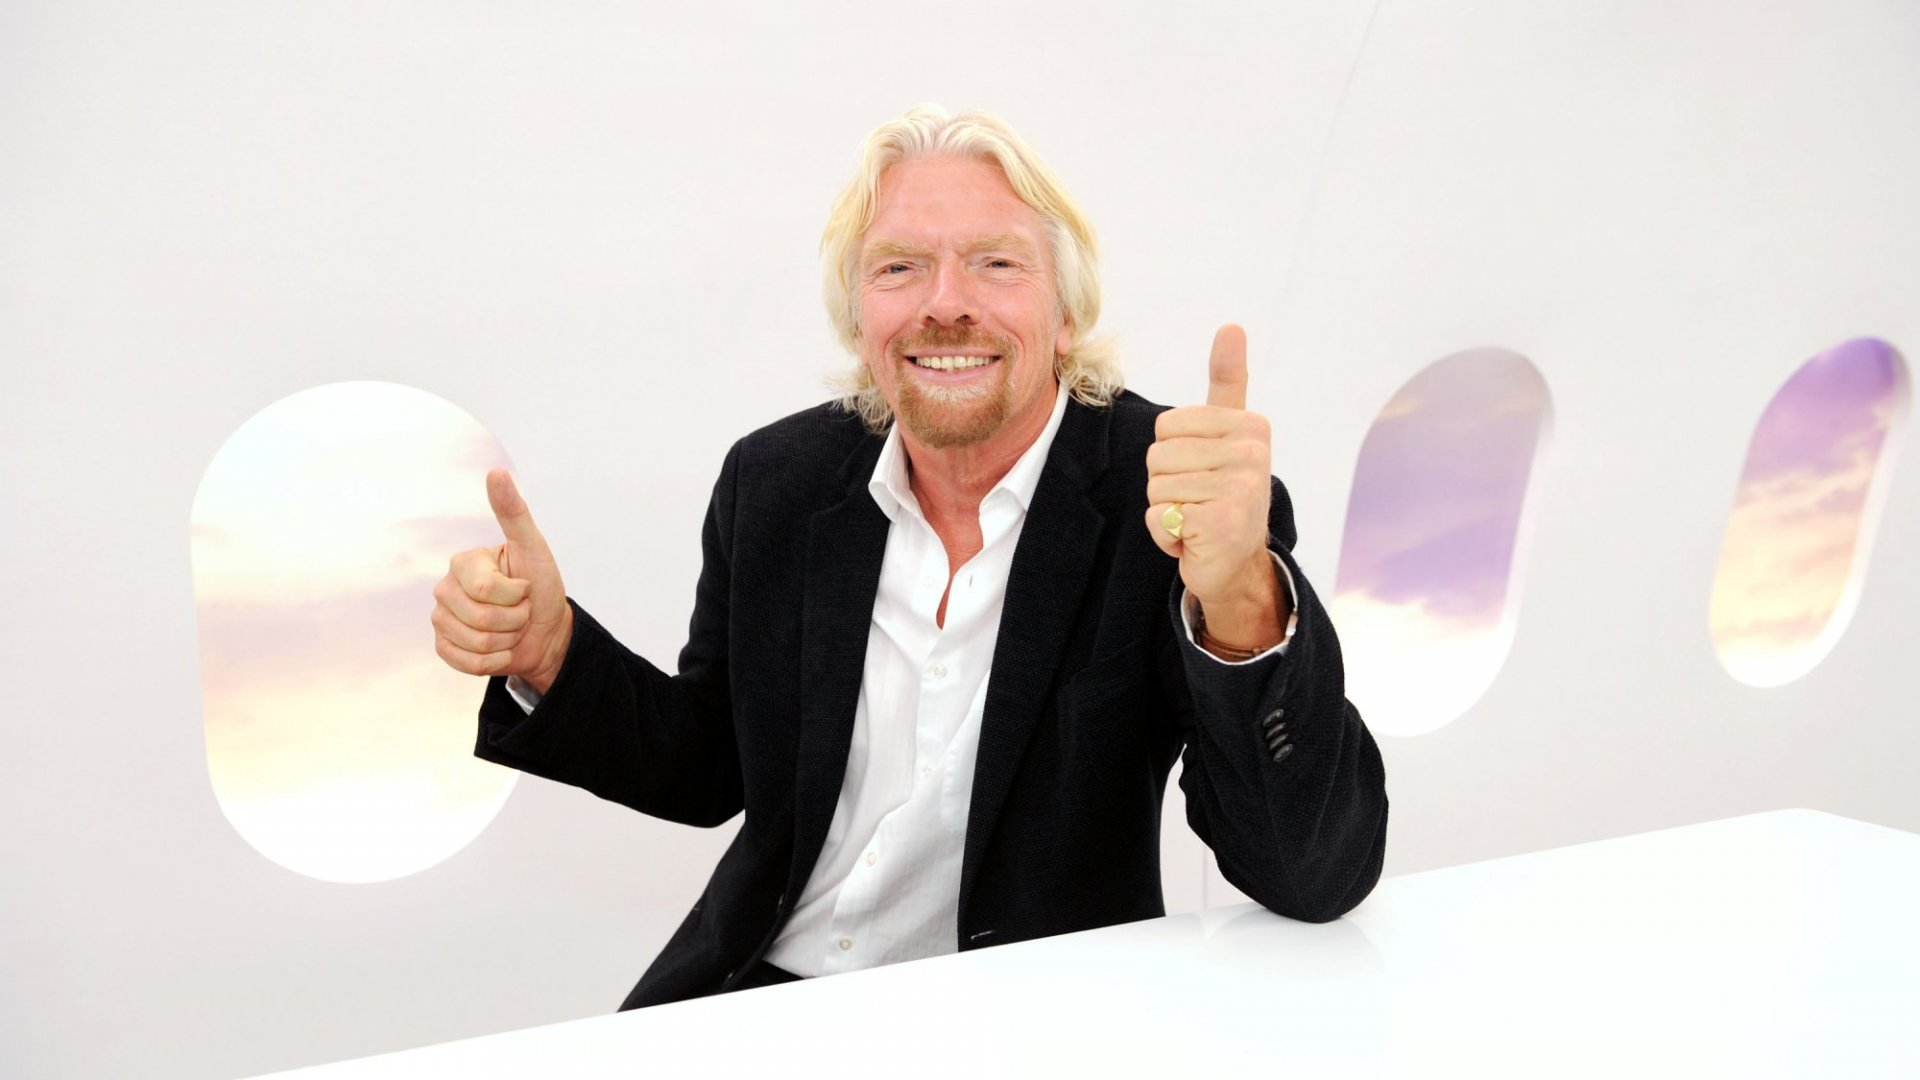 Richard Branson's Best Startup Advice in 140 Characters